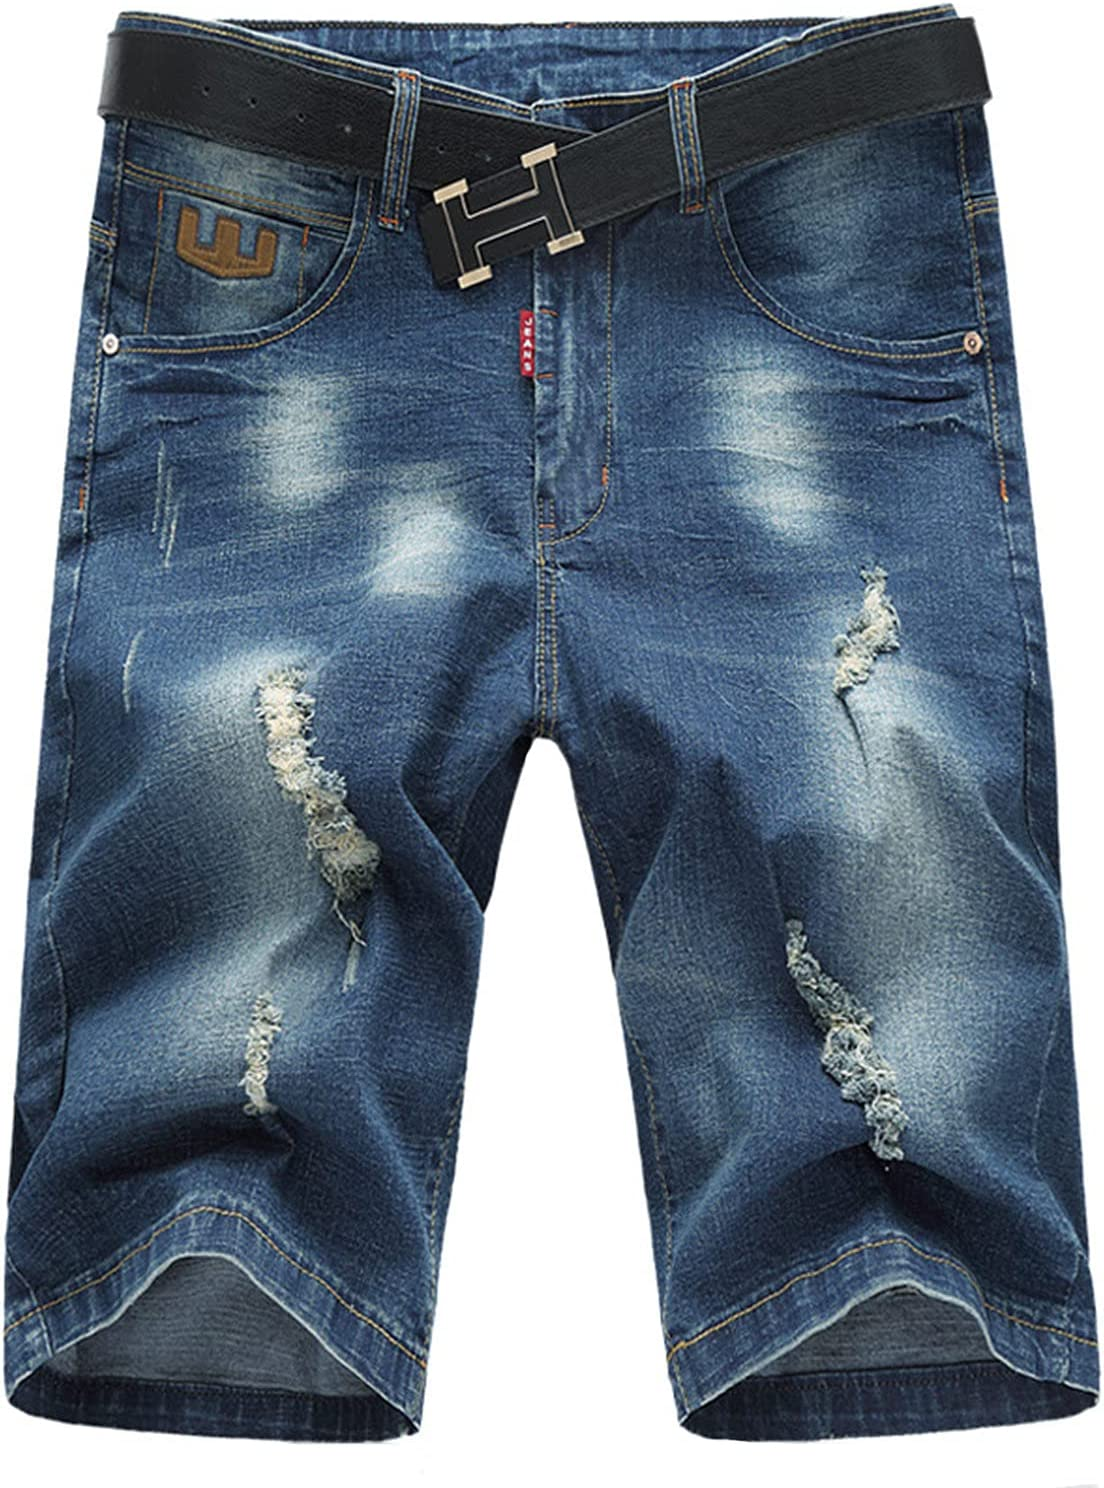 Men's Stretch Ripped Denim Shorts Summer Hole Casual Short Jeans Distressed Slim Fit Knee Length Jean Short-Pant (Blue,40)